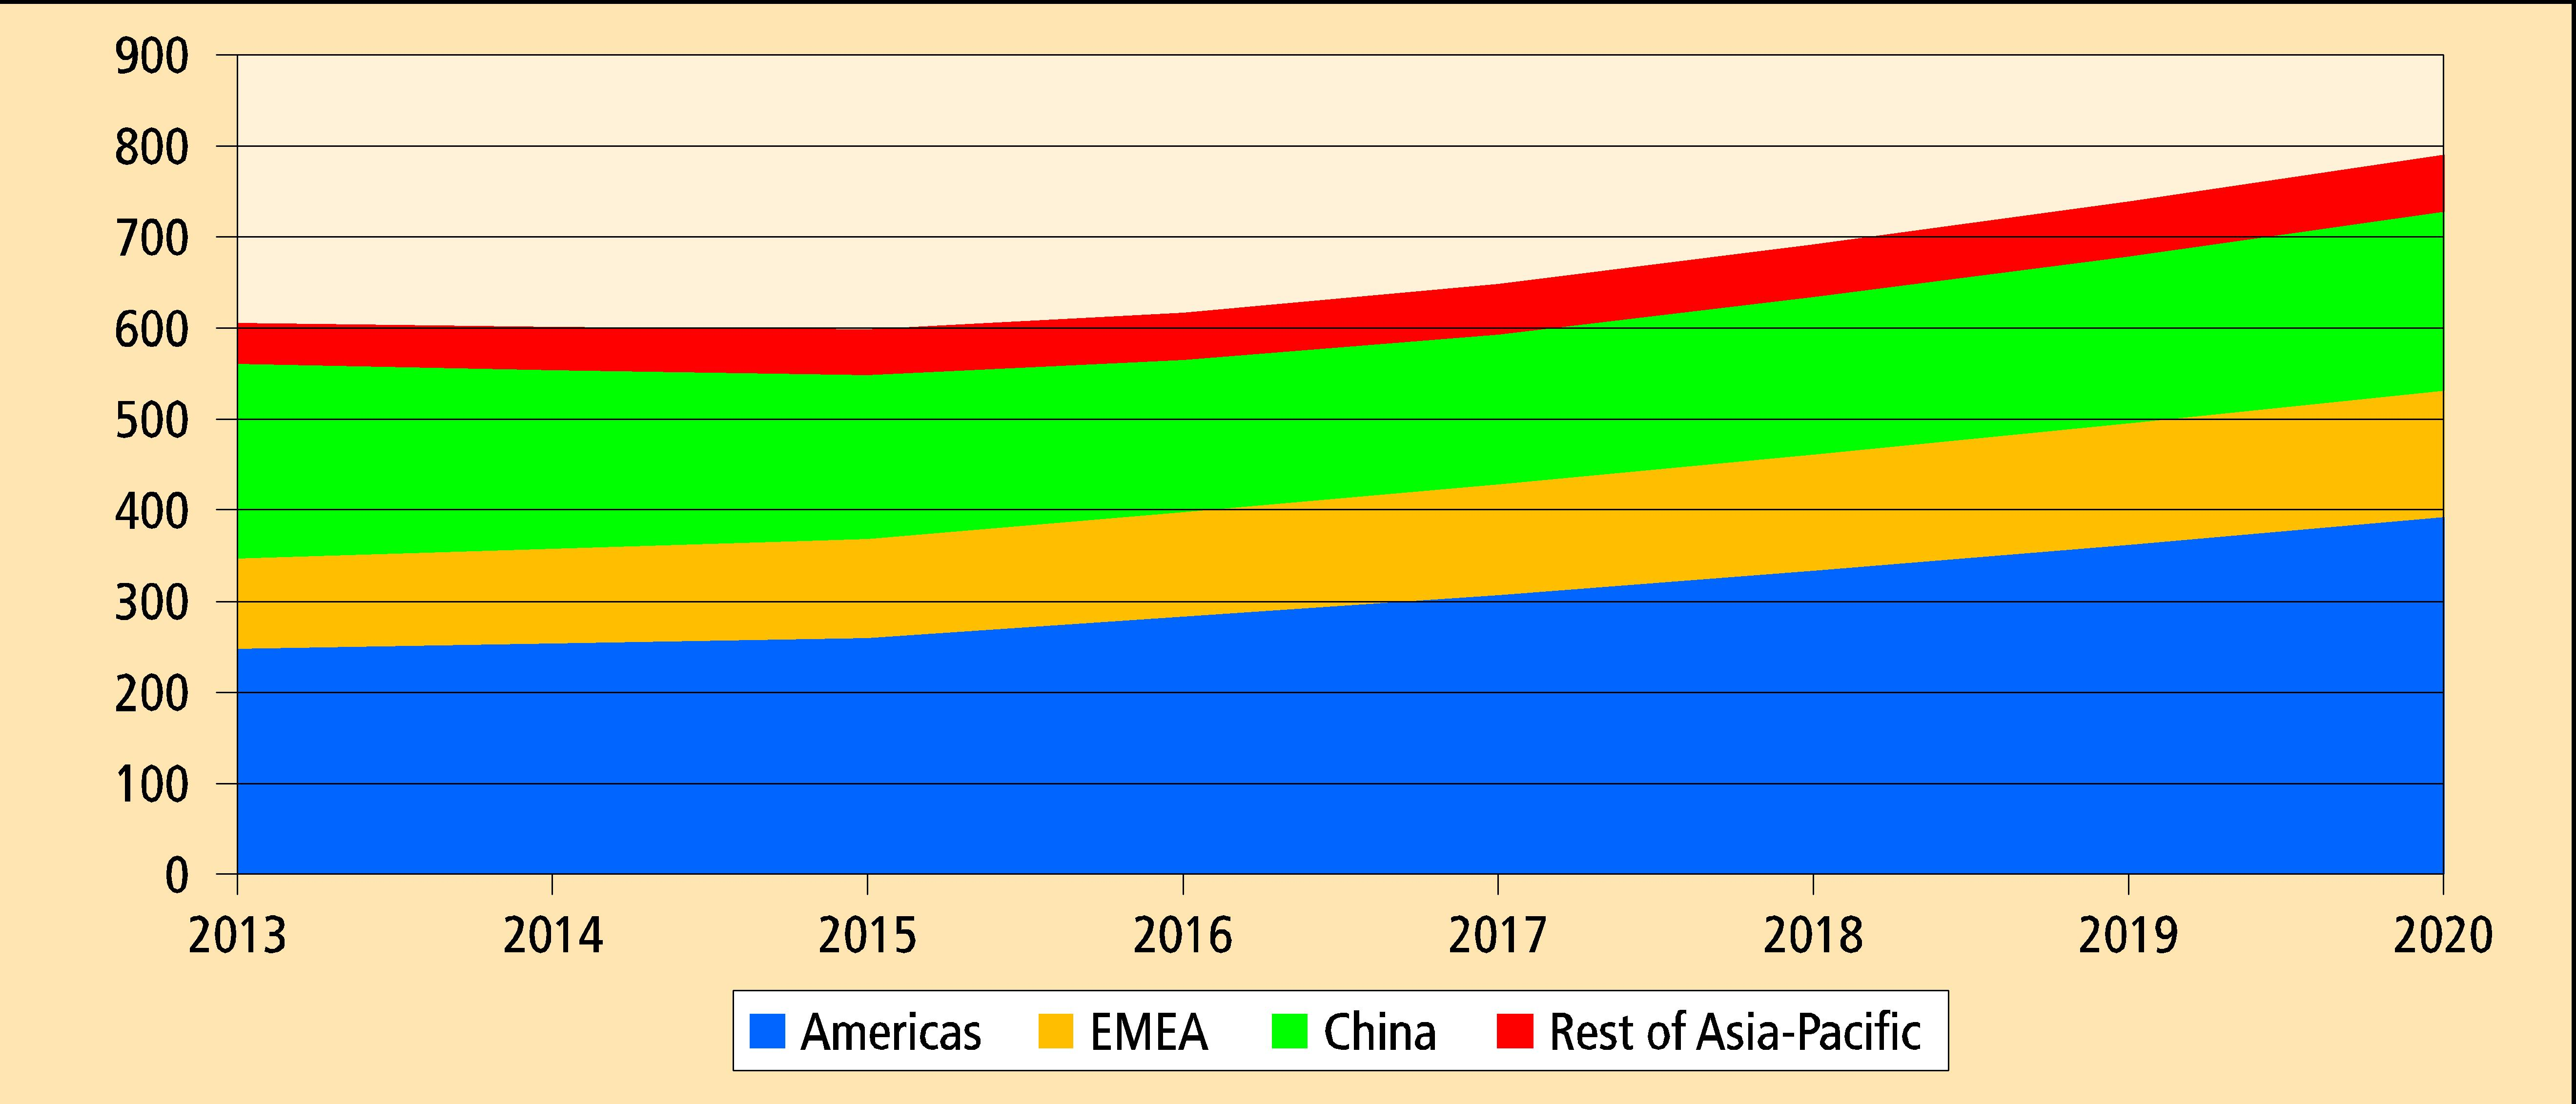 SPF production forecast to 2020 in 1,000 t (Source: IAL Consultants)